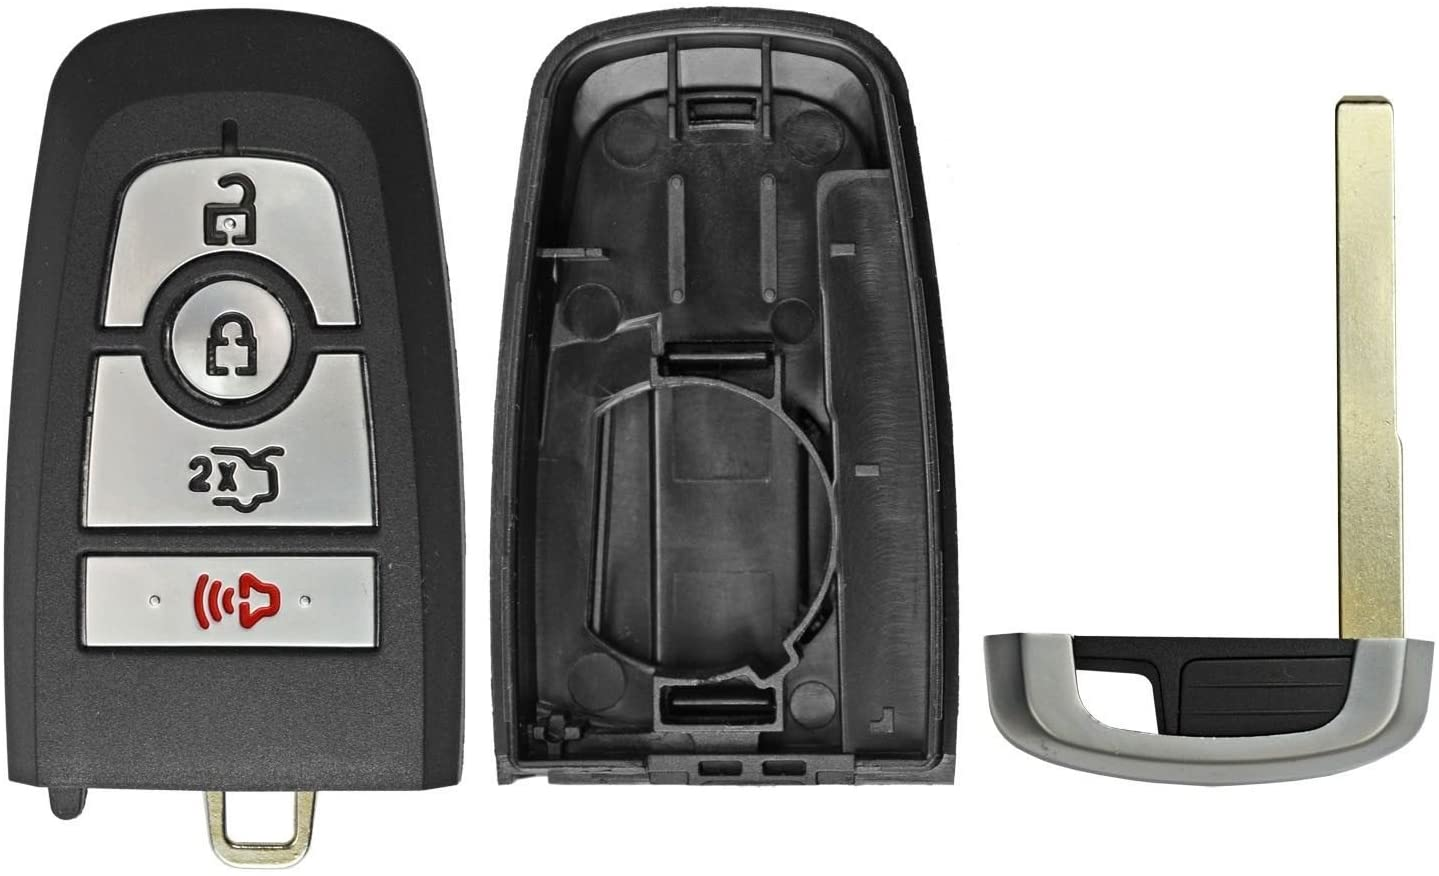 qualitykeylessplus Replacement Case Shell, Button Pad and Uncut Flip Key for Ford Keyless Entry Remote Fobs FCC ID M3N-A2C94078000 with Free Key Tag Return Service (1)